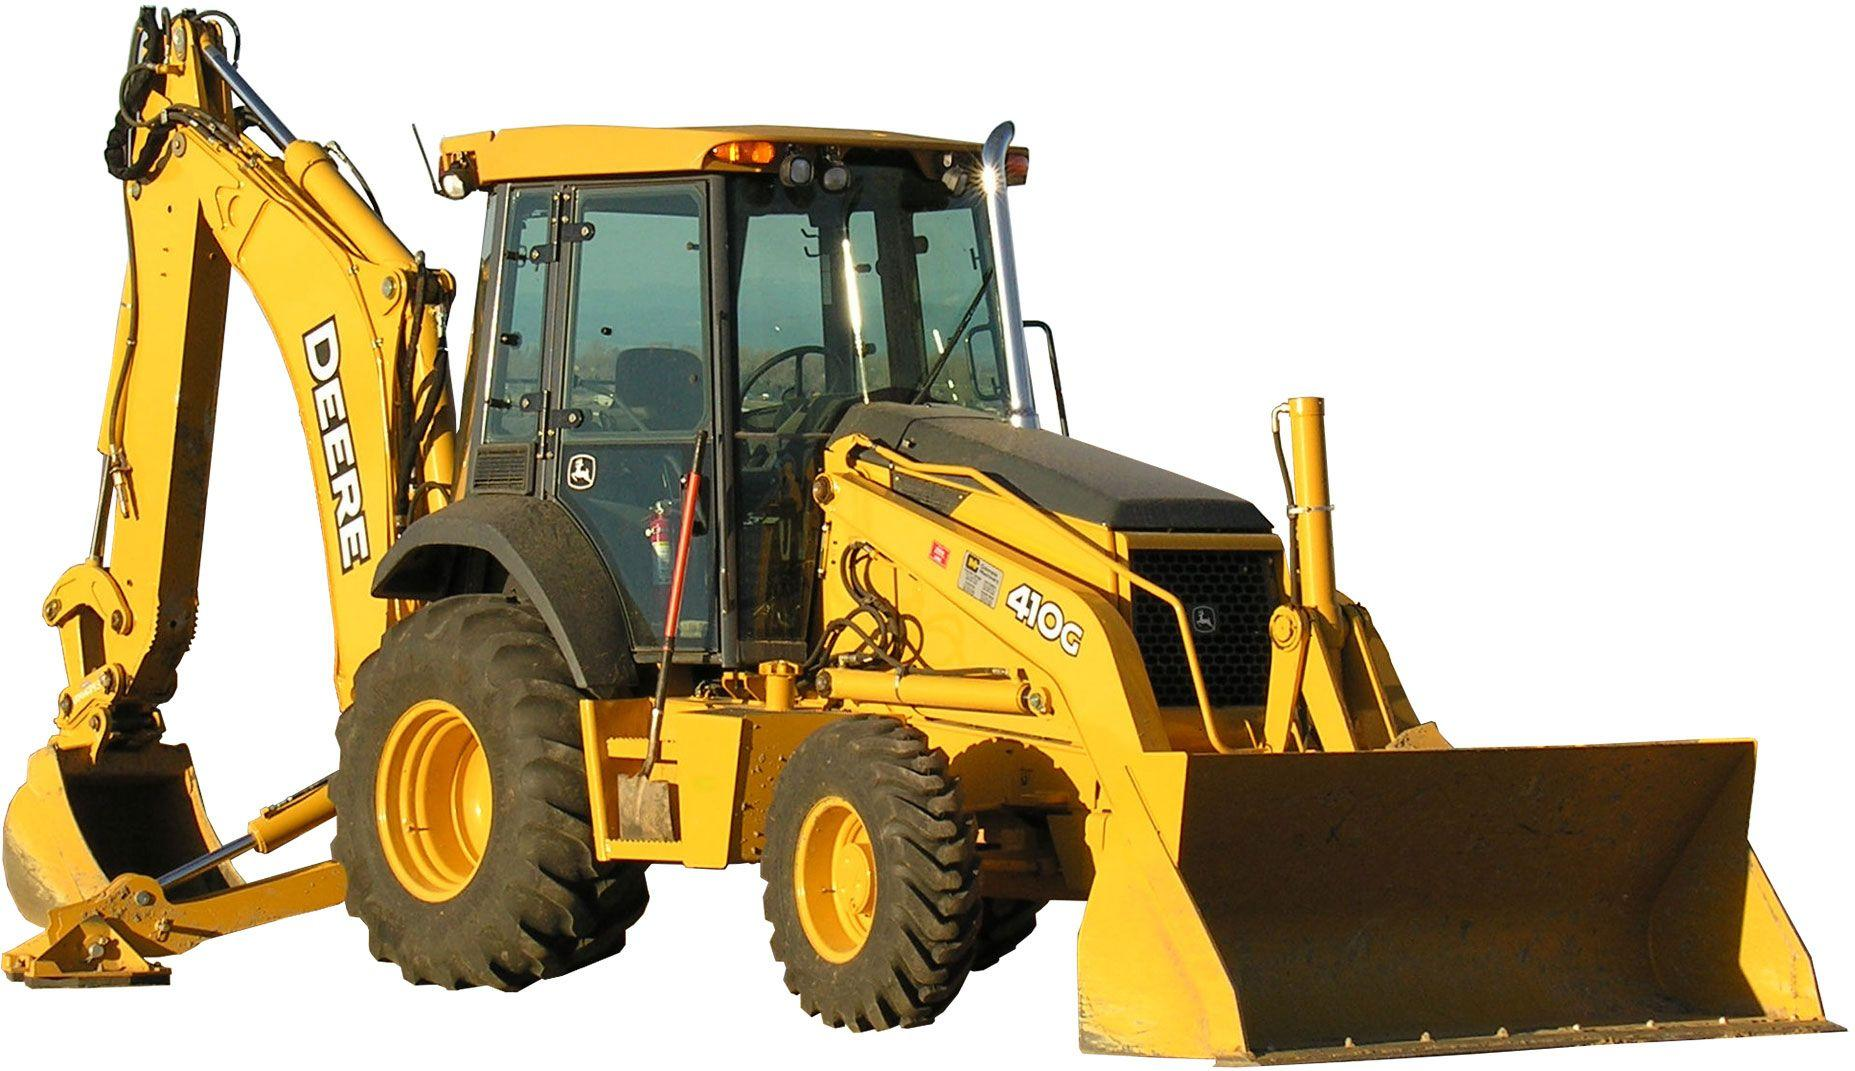 john deere 410g wiring diagram john deere 410g backhoe loader technical manual  operation   test  john deere 410g backhoe loader